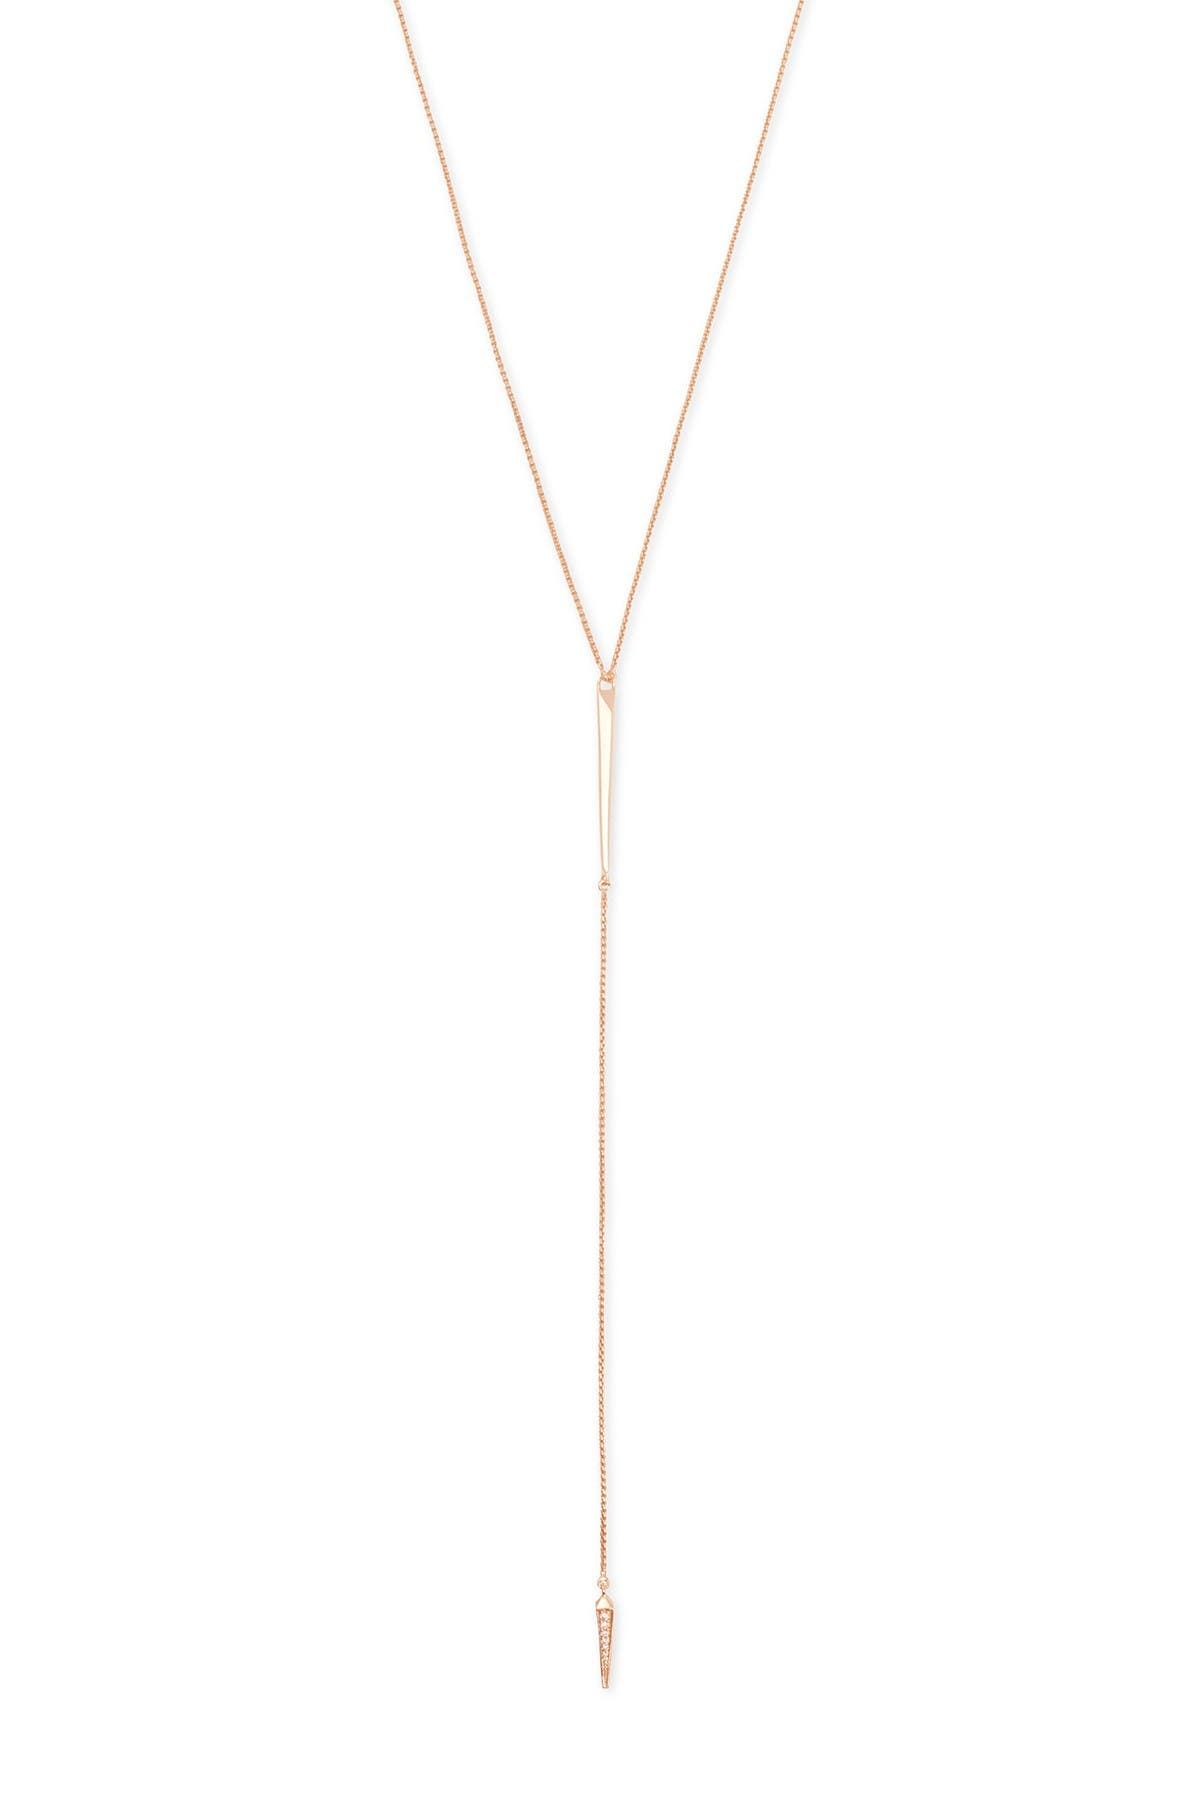 Image of Kendra Scott Vivian Rhodium Plated Brass Drusy Pendant Y-Drop Necklace